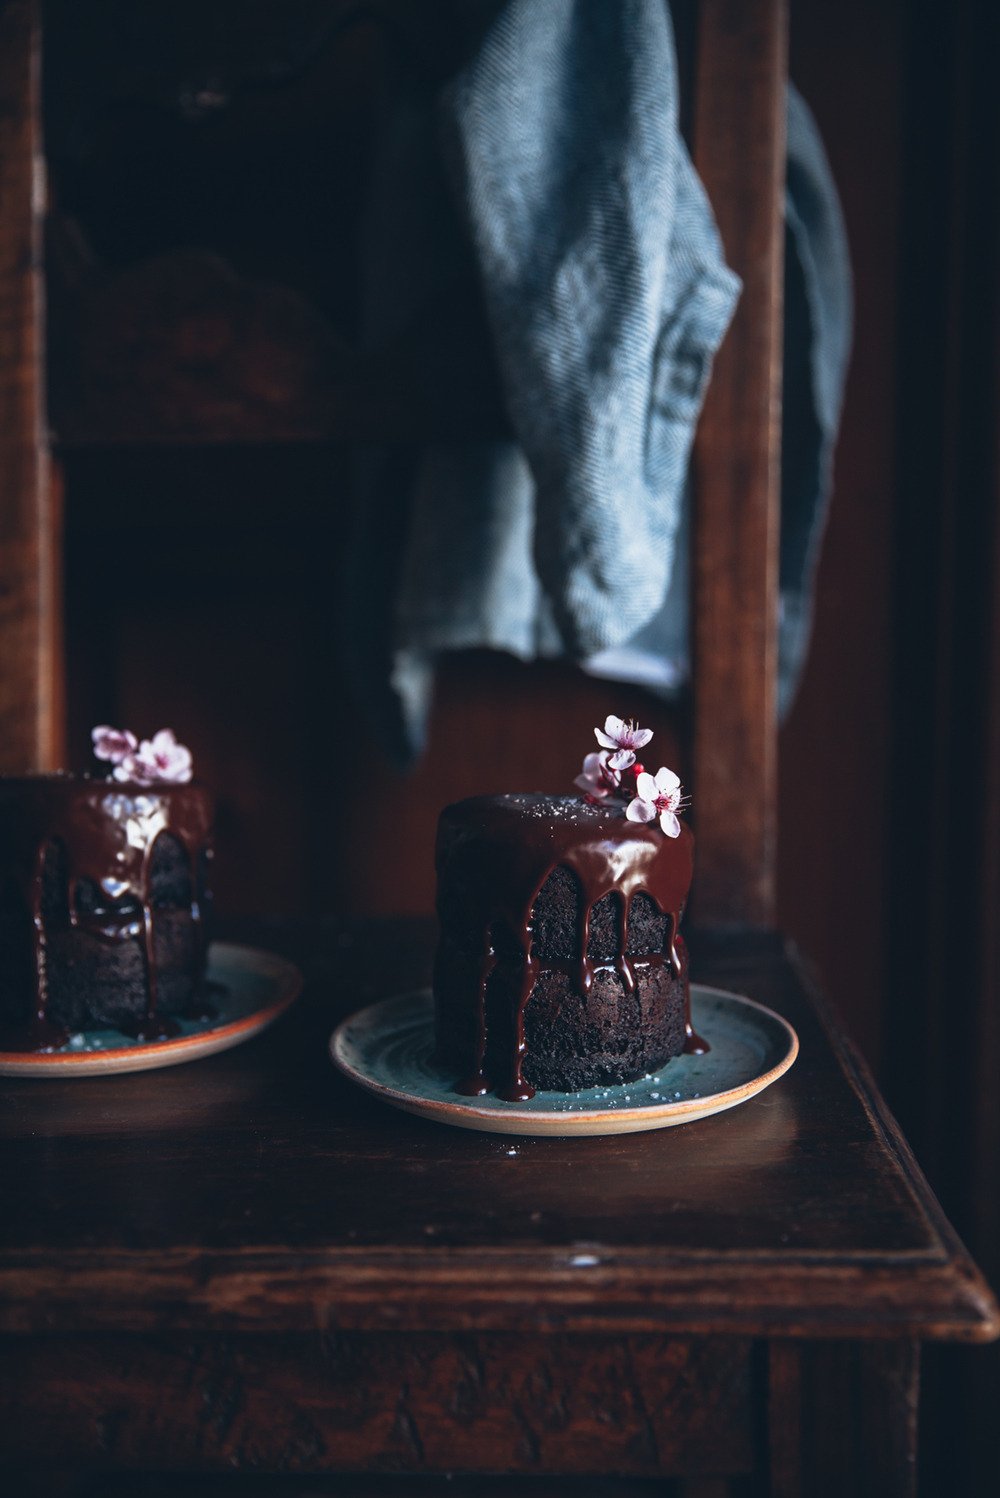 Chocolate cakes - First We Eat workshop